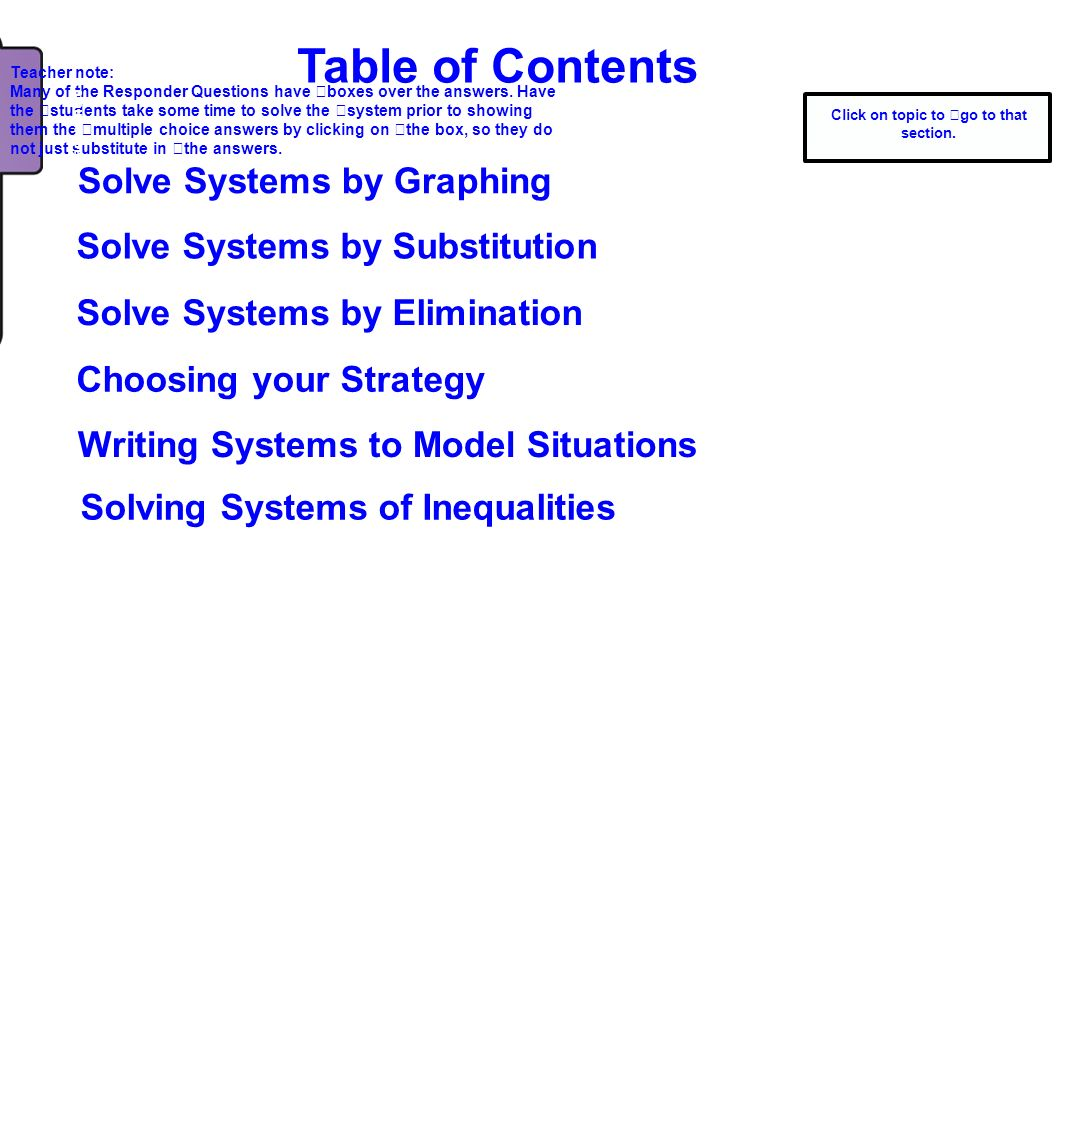 worksheet solving systems by substitution worksheet table of contents solve systems by graphing substitution elimination choosing - Solving Systems By Substitution Worksheet